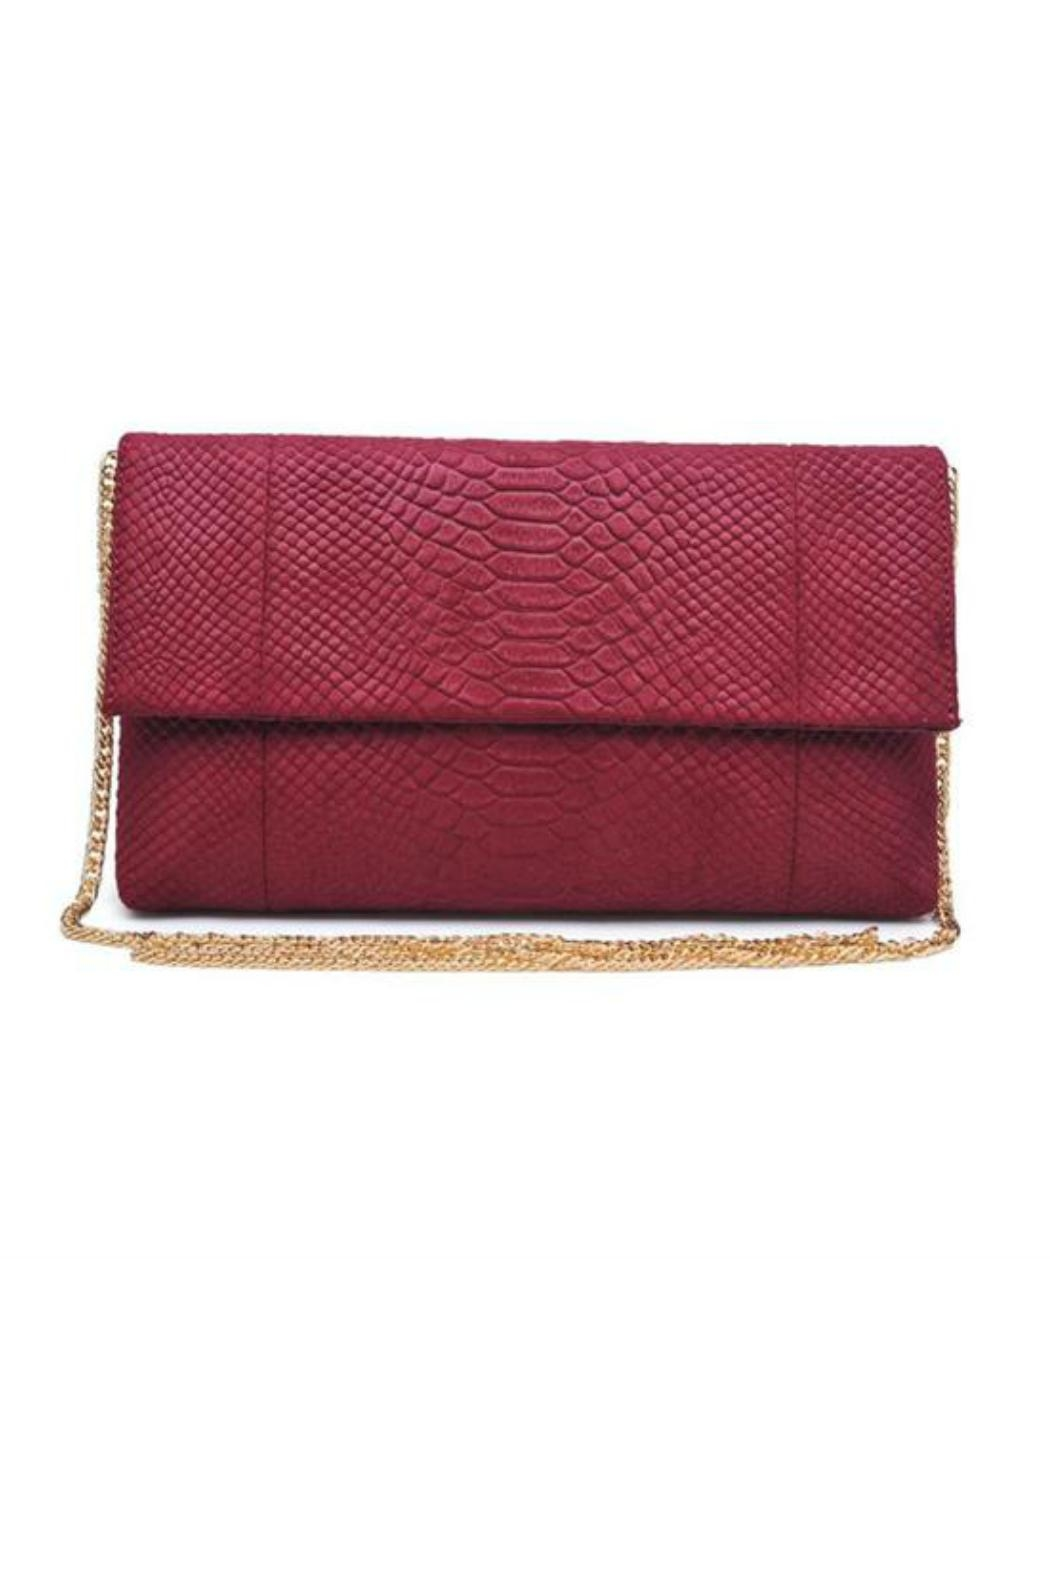 Urban Expressions Phoebe Clutch - Front Cropped Image